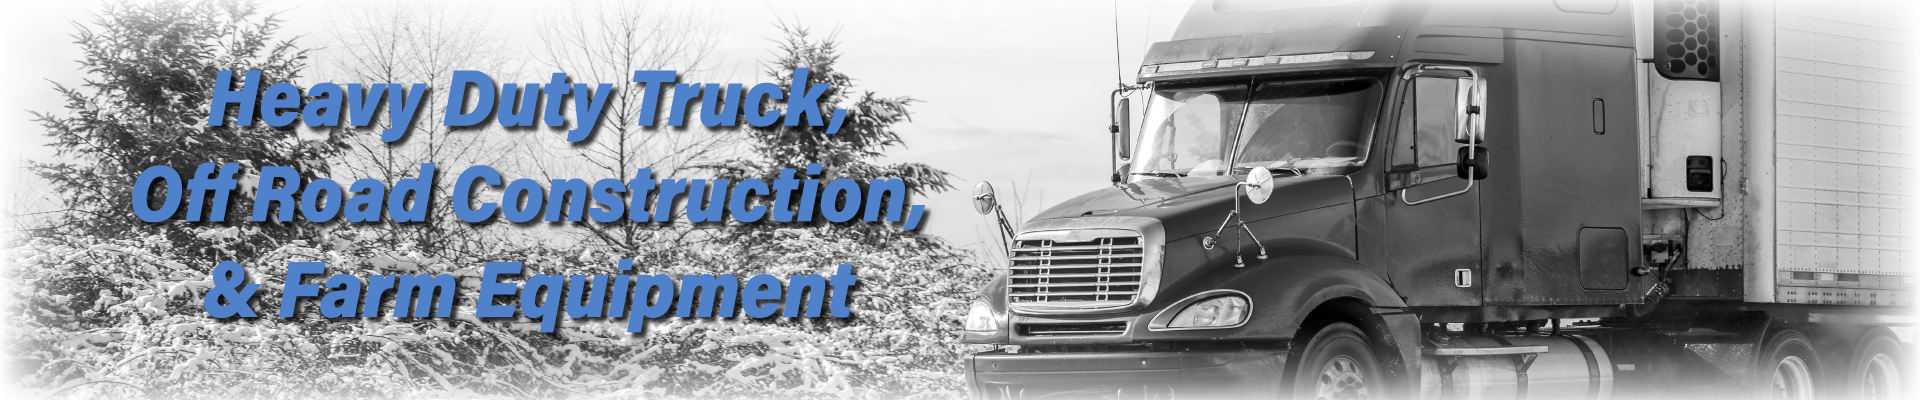 Heavy Duty Equipment | Winter Products